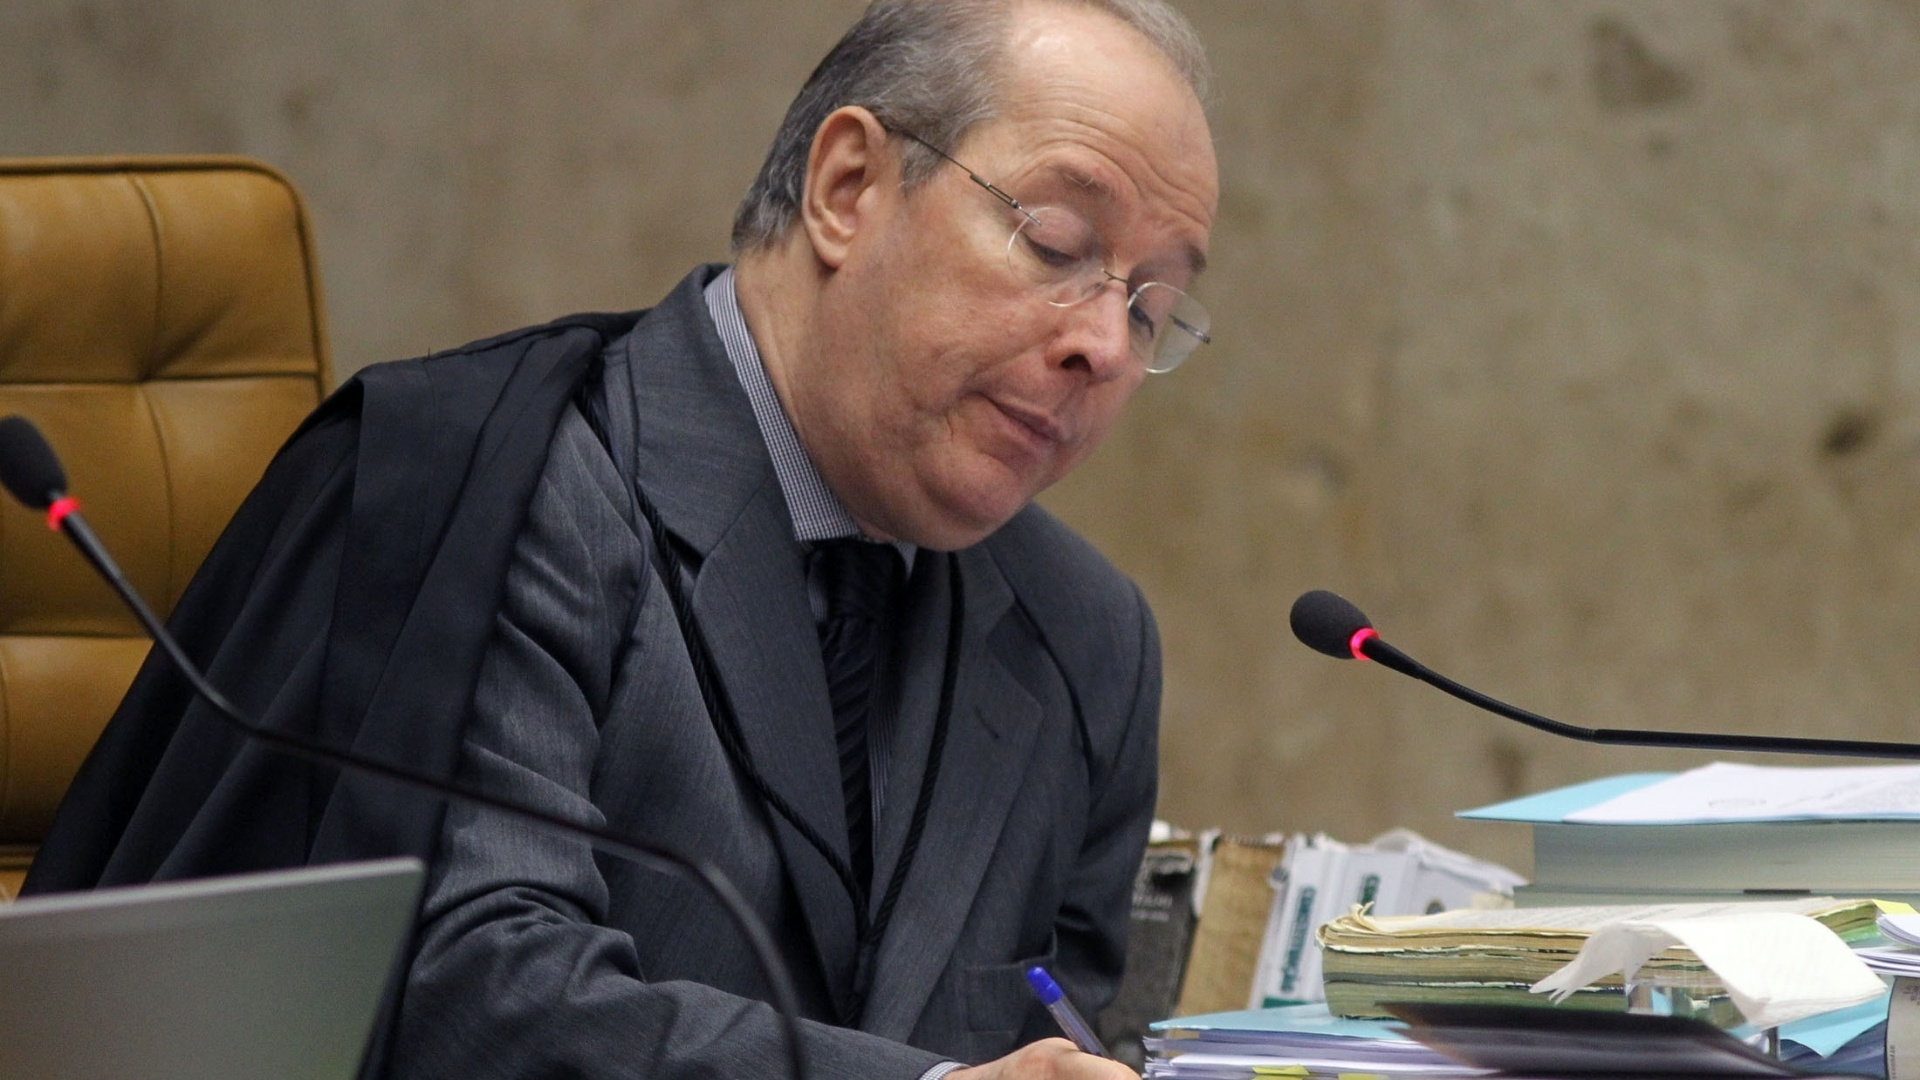 10.dez.2012 - O ministro Celso de Mello participa de sesso do julgamento do mensalo que analisa se cabe ao STF determinar a perda de mandato dos deputados condenados no processo